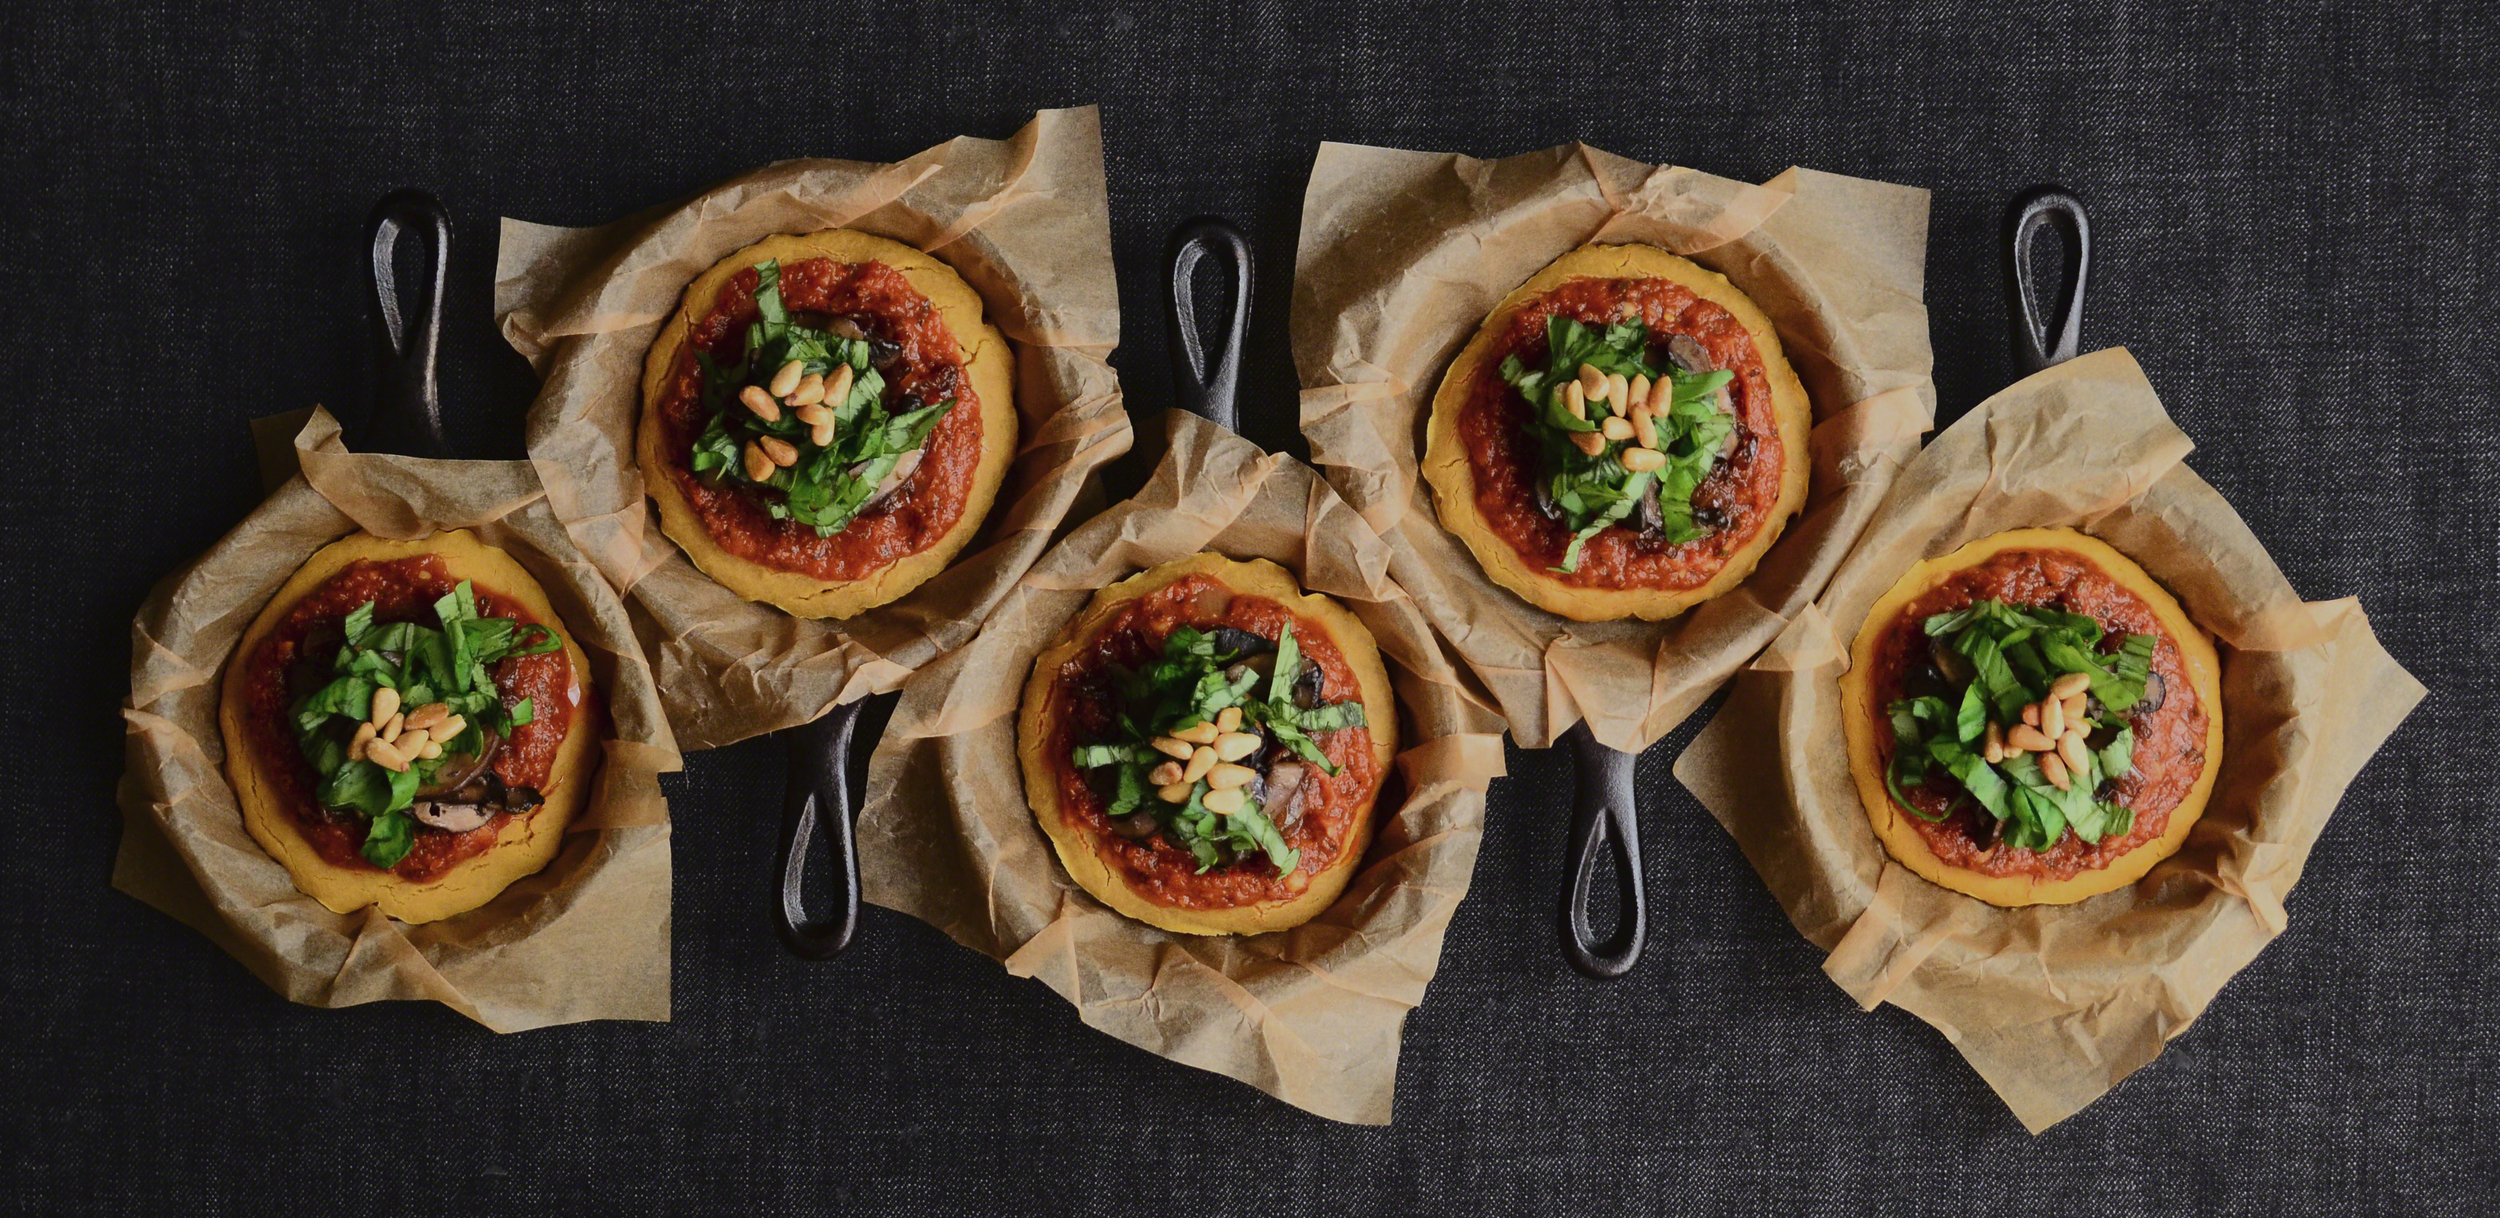 Sweet Potato Quinoa Mini Cake Pizzas with Caramelized Onions + Sautéed Baby Bellas topped with Fresh Basil and Toasted Pine Nuts | Seed Plant Water Grow